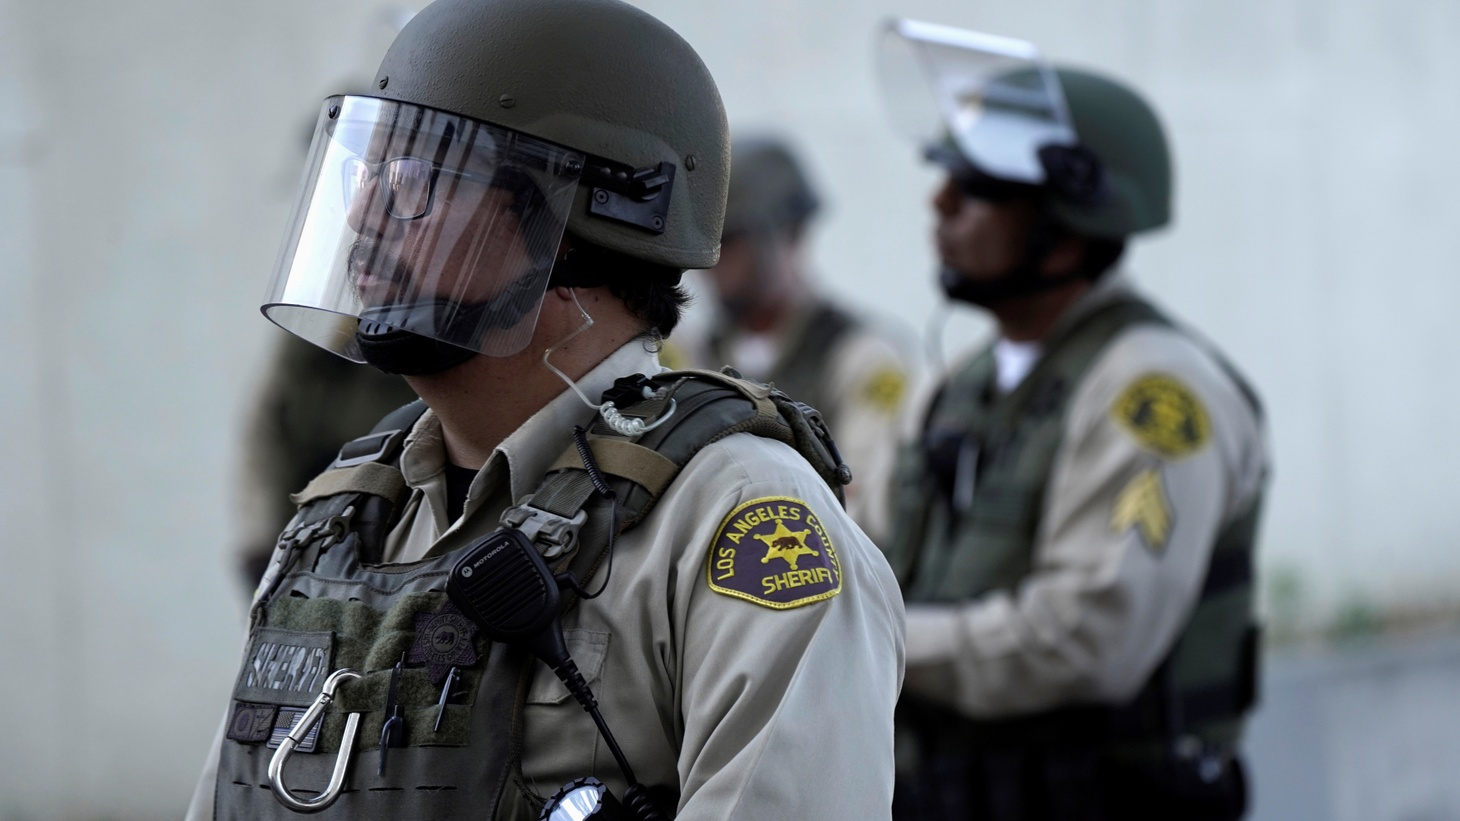 Los Angeles County Sheriff's Department deputies, in riot gear, watch a protest over racial injustice and the Gardena fatal shooting of 18 year-old security guard Andres Guardado, in Compton, California, U.S., June 21, 2020.